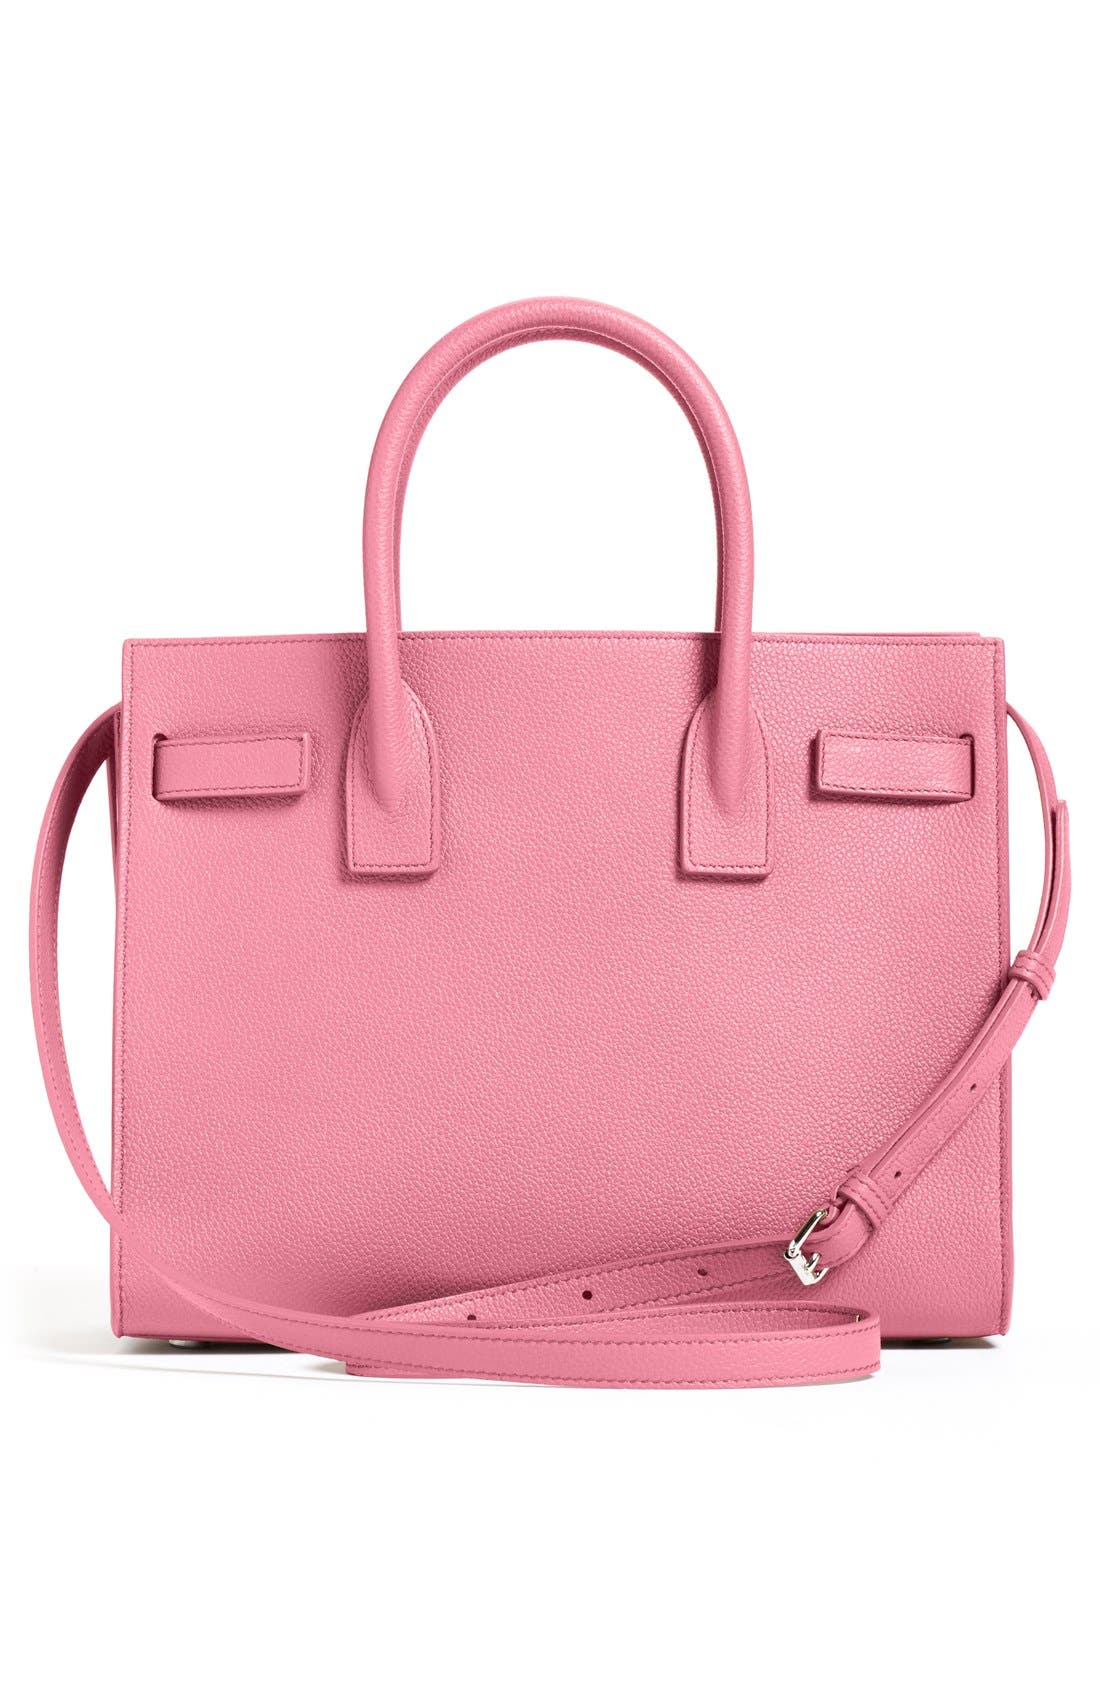 'Baby Sac de Jour' Bonded Leather Tote,                             Alternate thumbnail 3, color,                             Pink